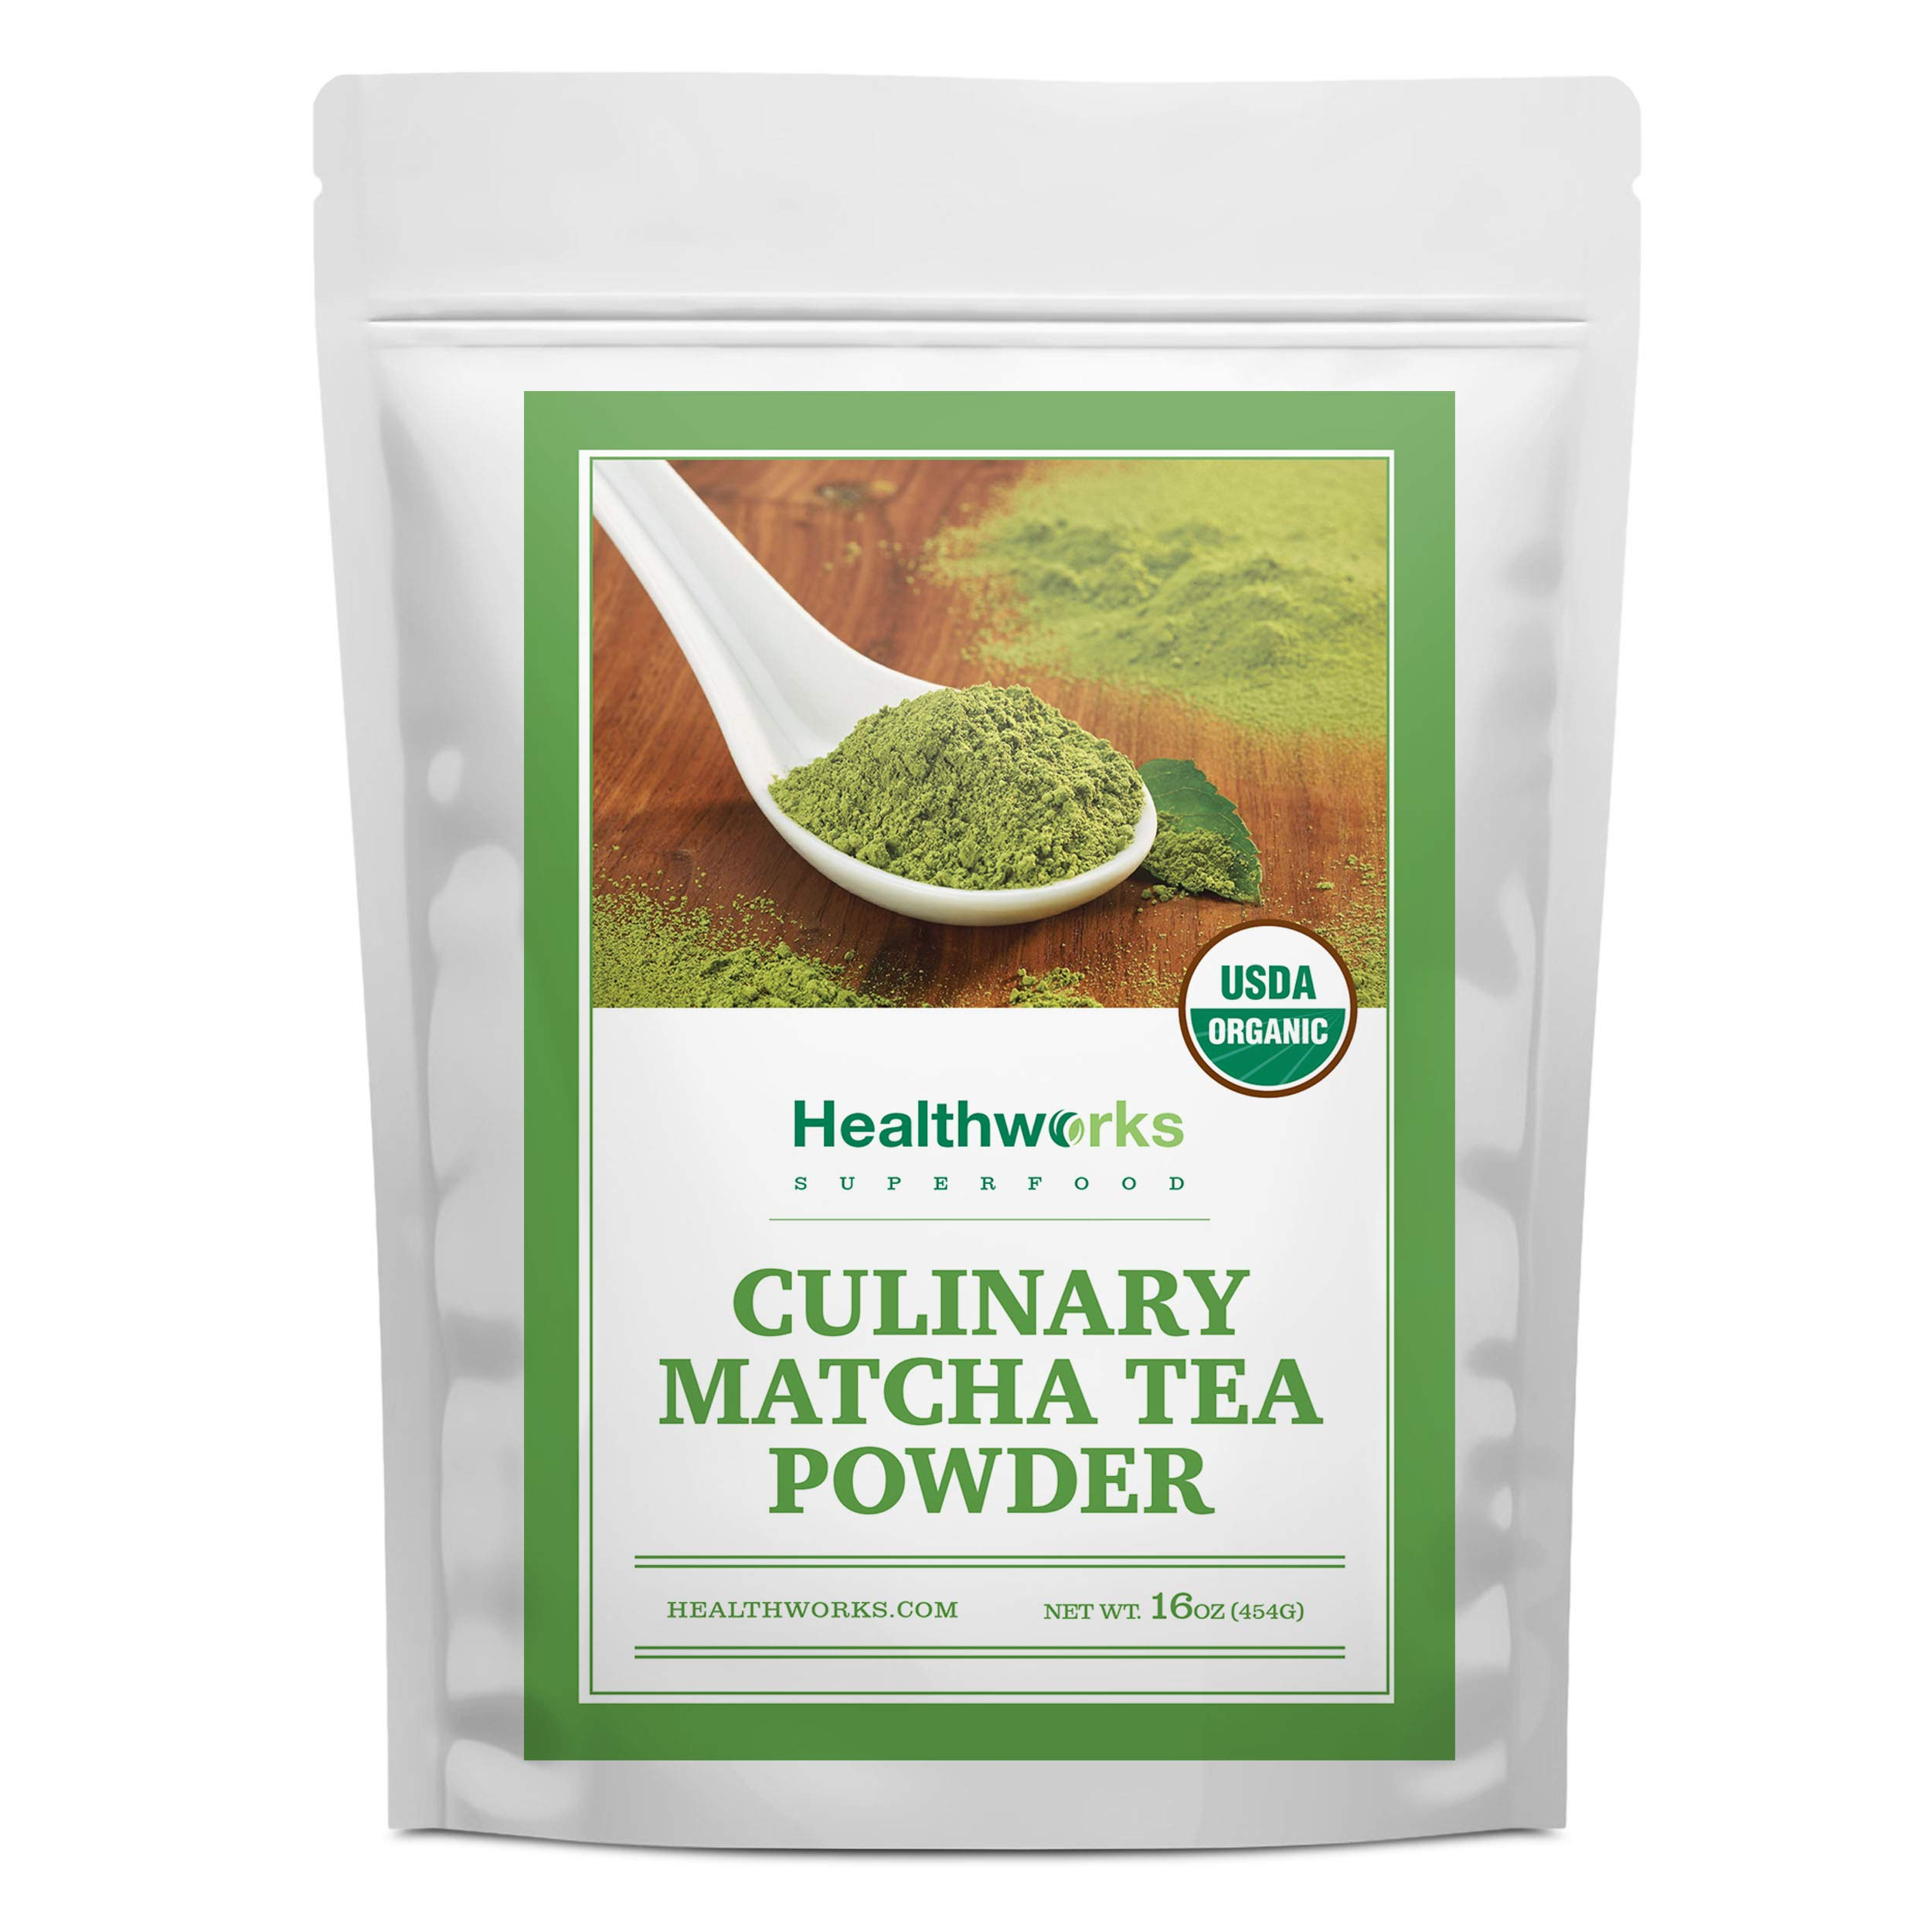 Healthworks Matcha Green Tea Powder Unsweetened (16 Ounces / 1 Pound) |Pure Certified Organic Premium Culinary Grade Extract |Keto, Vegan & Non-GMO | Smoothies, Lattes, Ice Cream, Baking Recipes by Healthworks